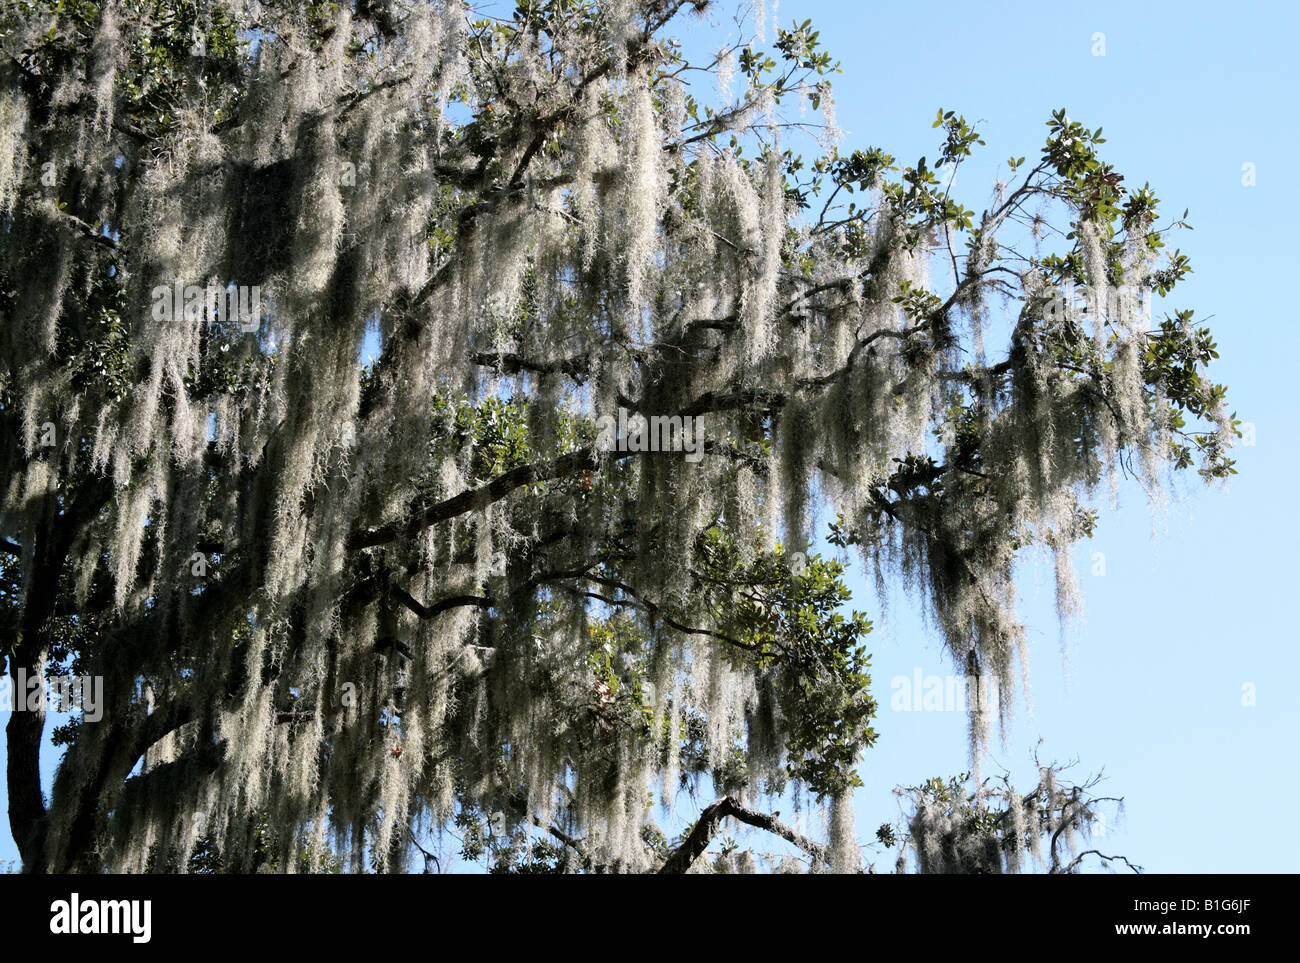 spanish moss growing on trees at central florida lake dora